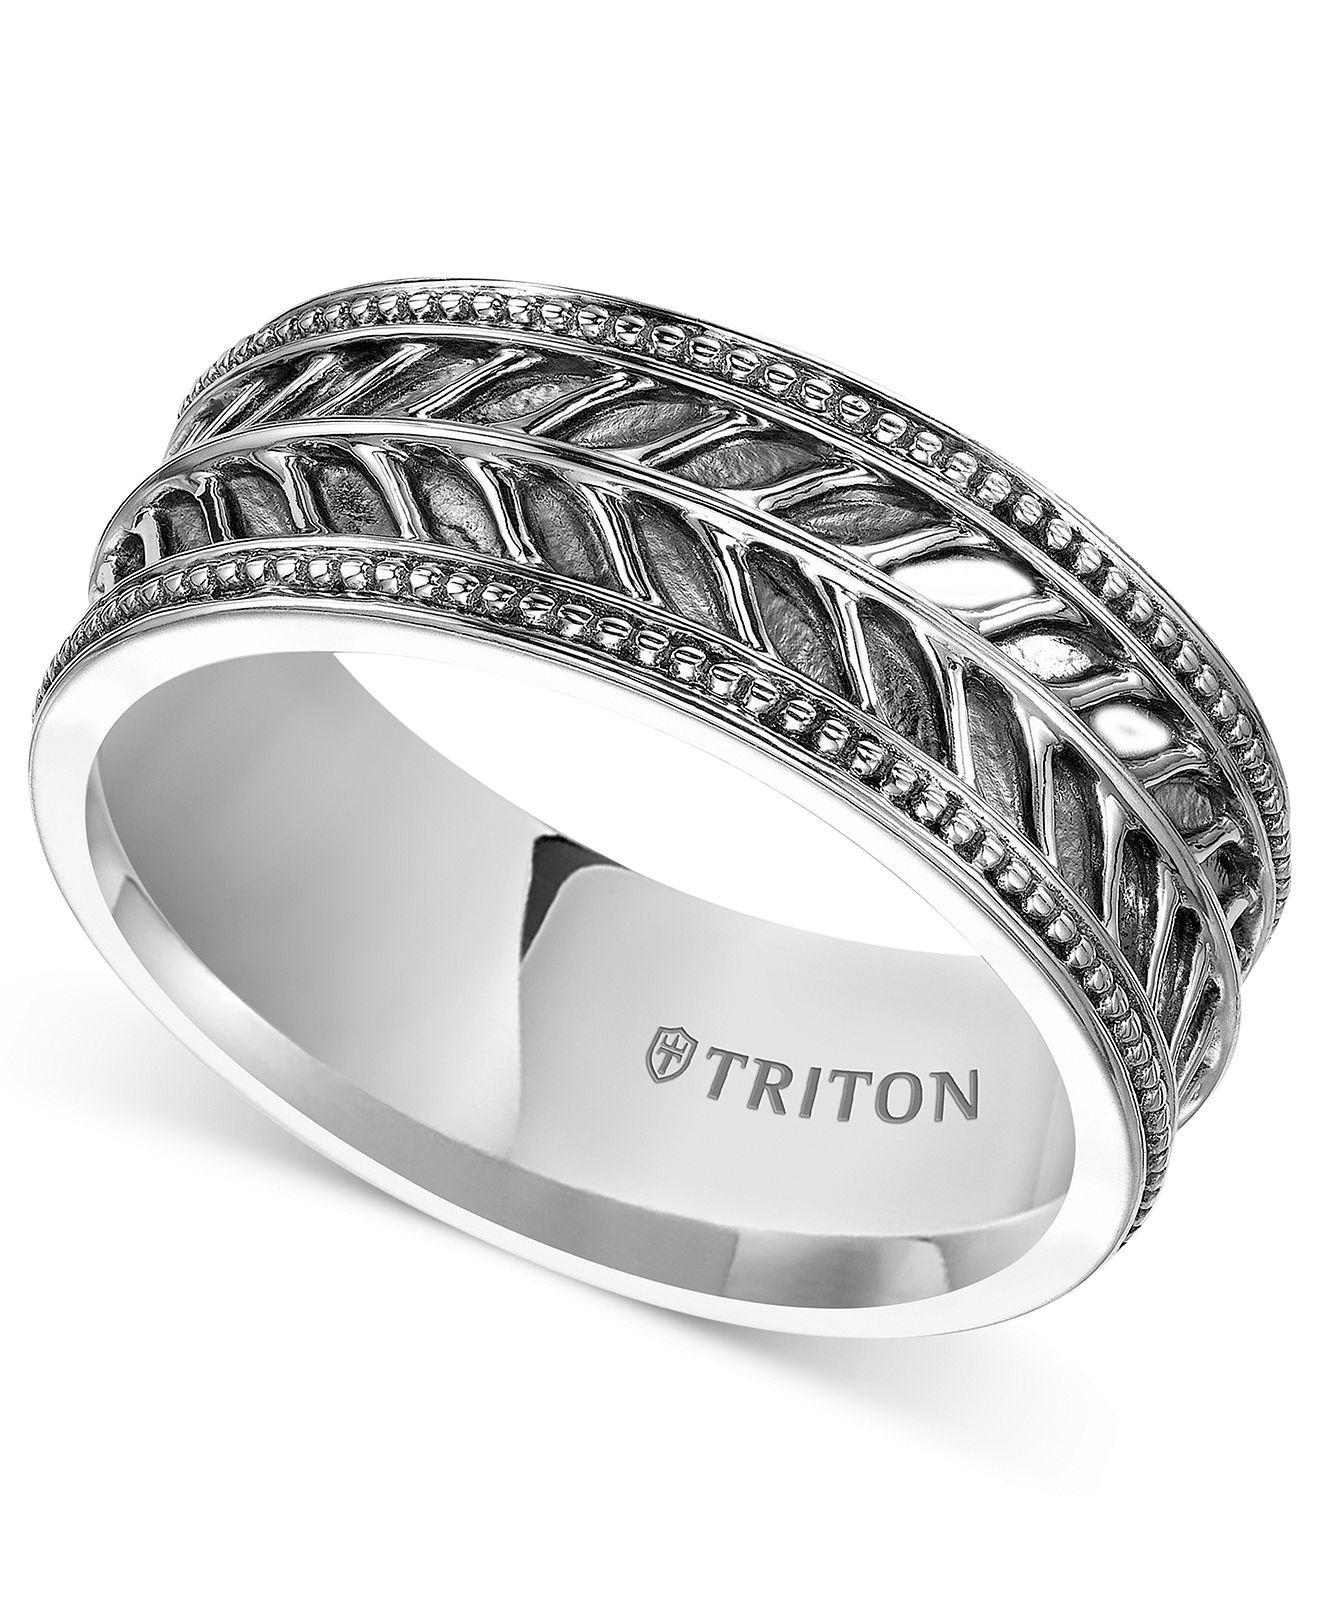 Triton Mens Sterling Silver Ring 10mm Leaf Pattern Wedding Band